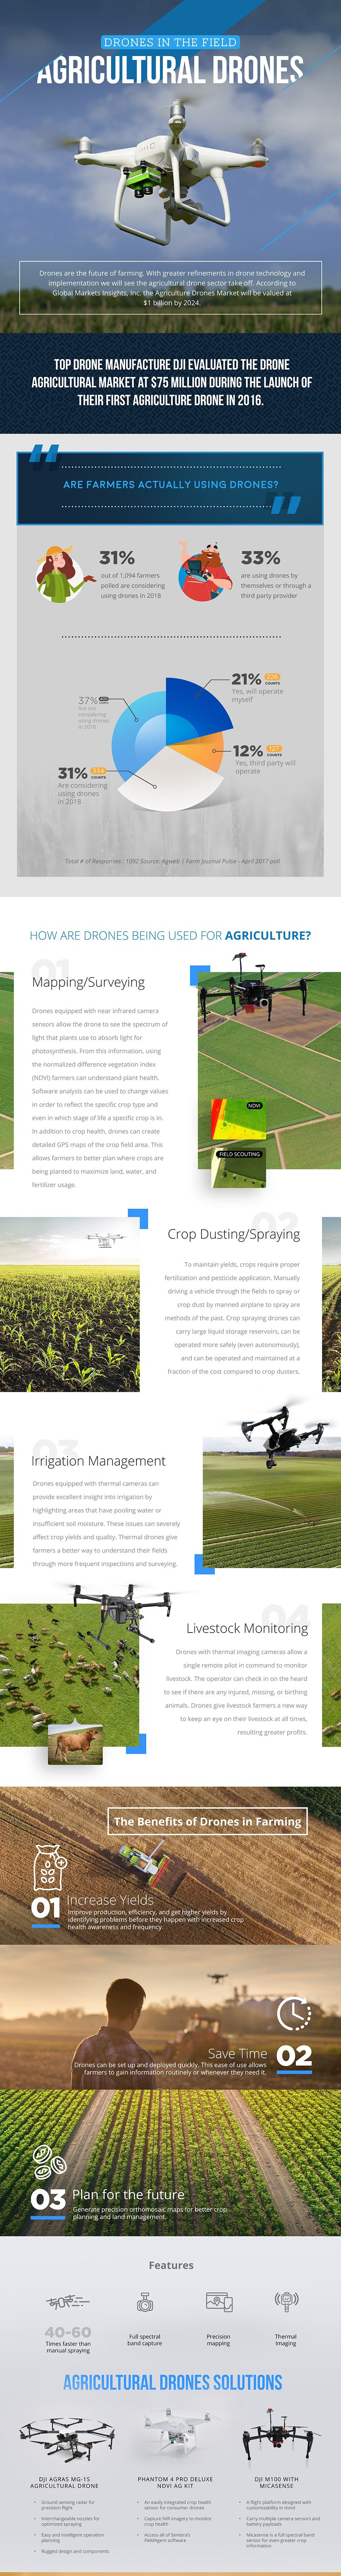 Agriculture Drones Infographic - Dronefly